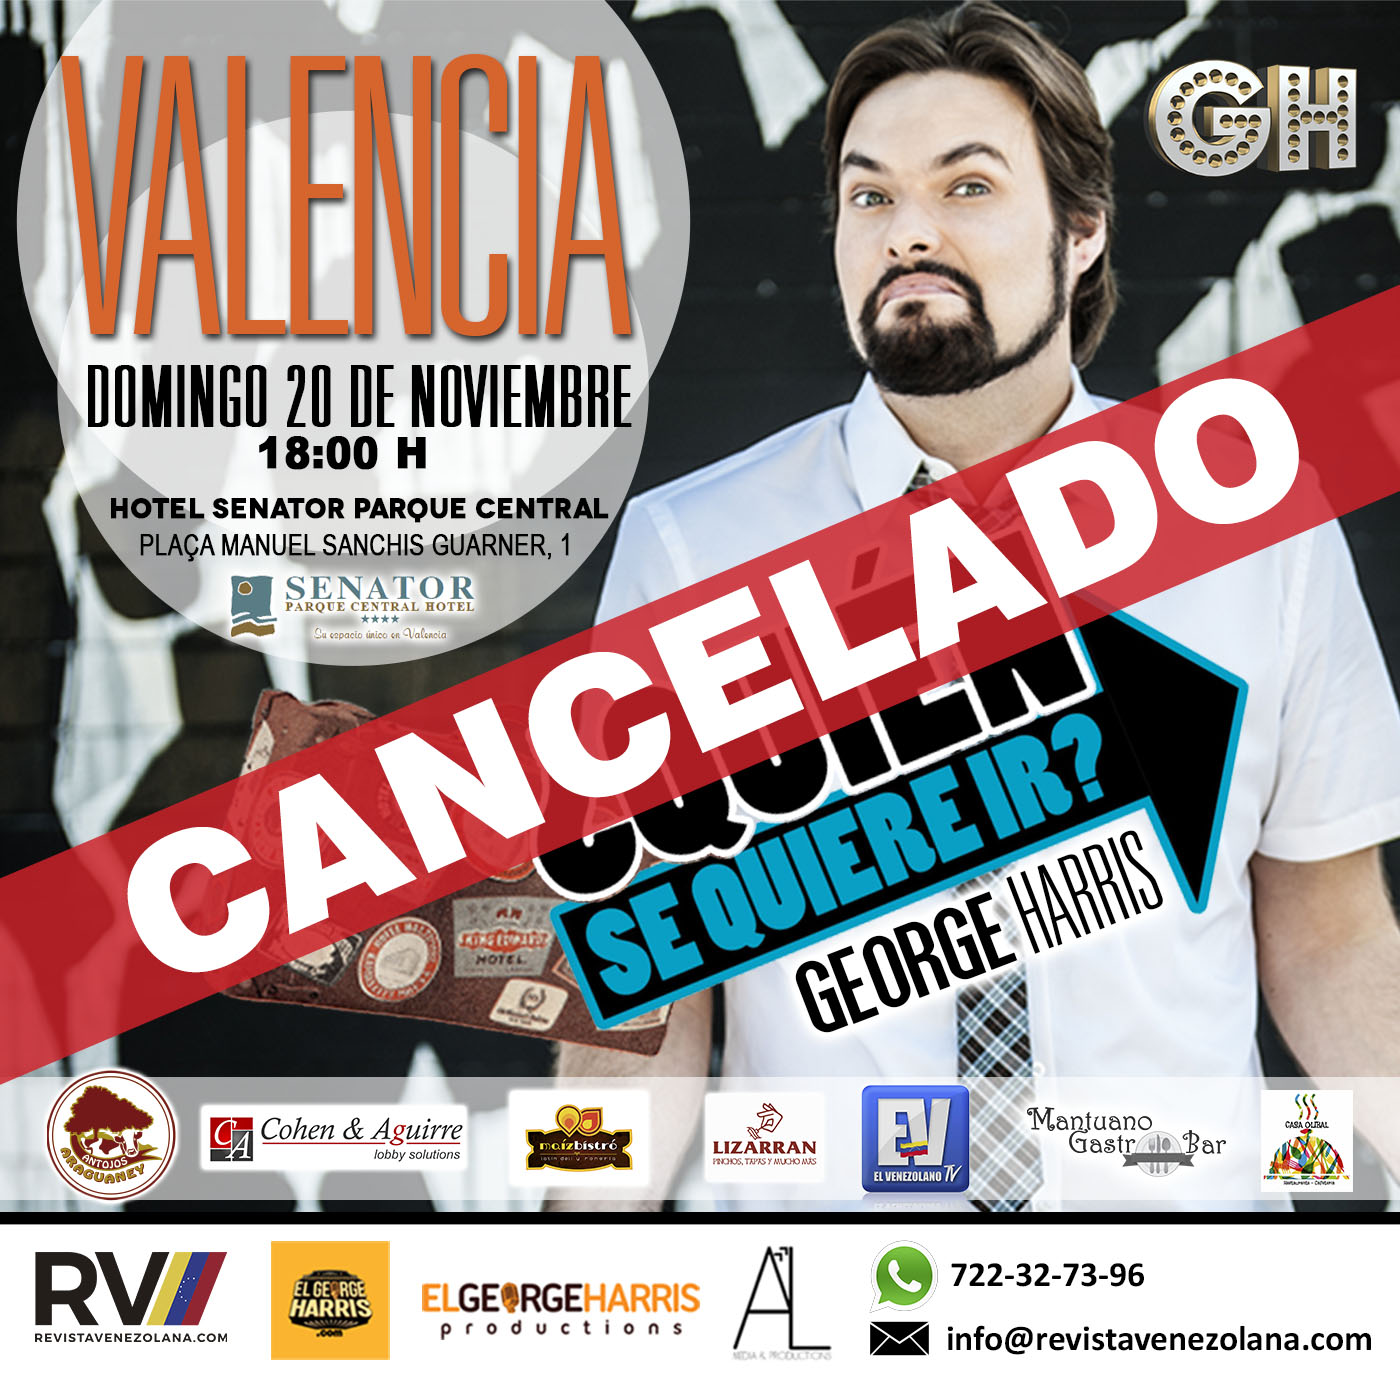 george-harris-instagram-valencia-cancelado